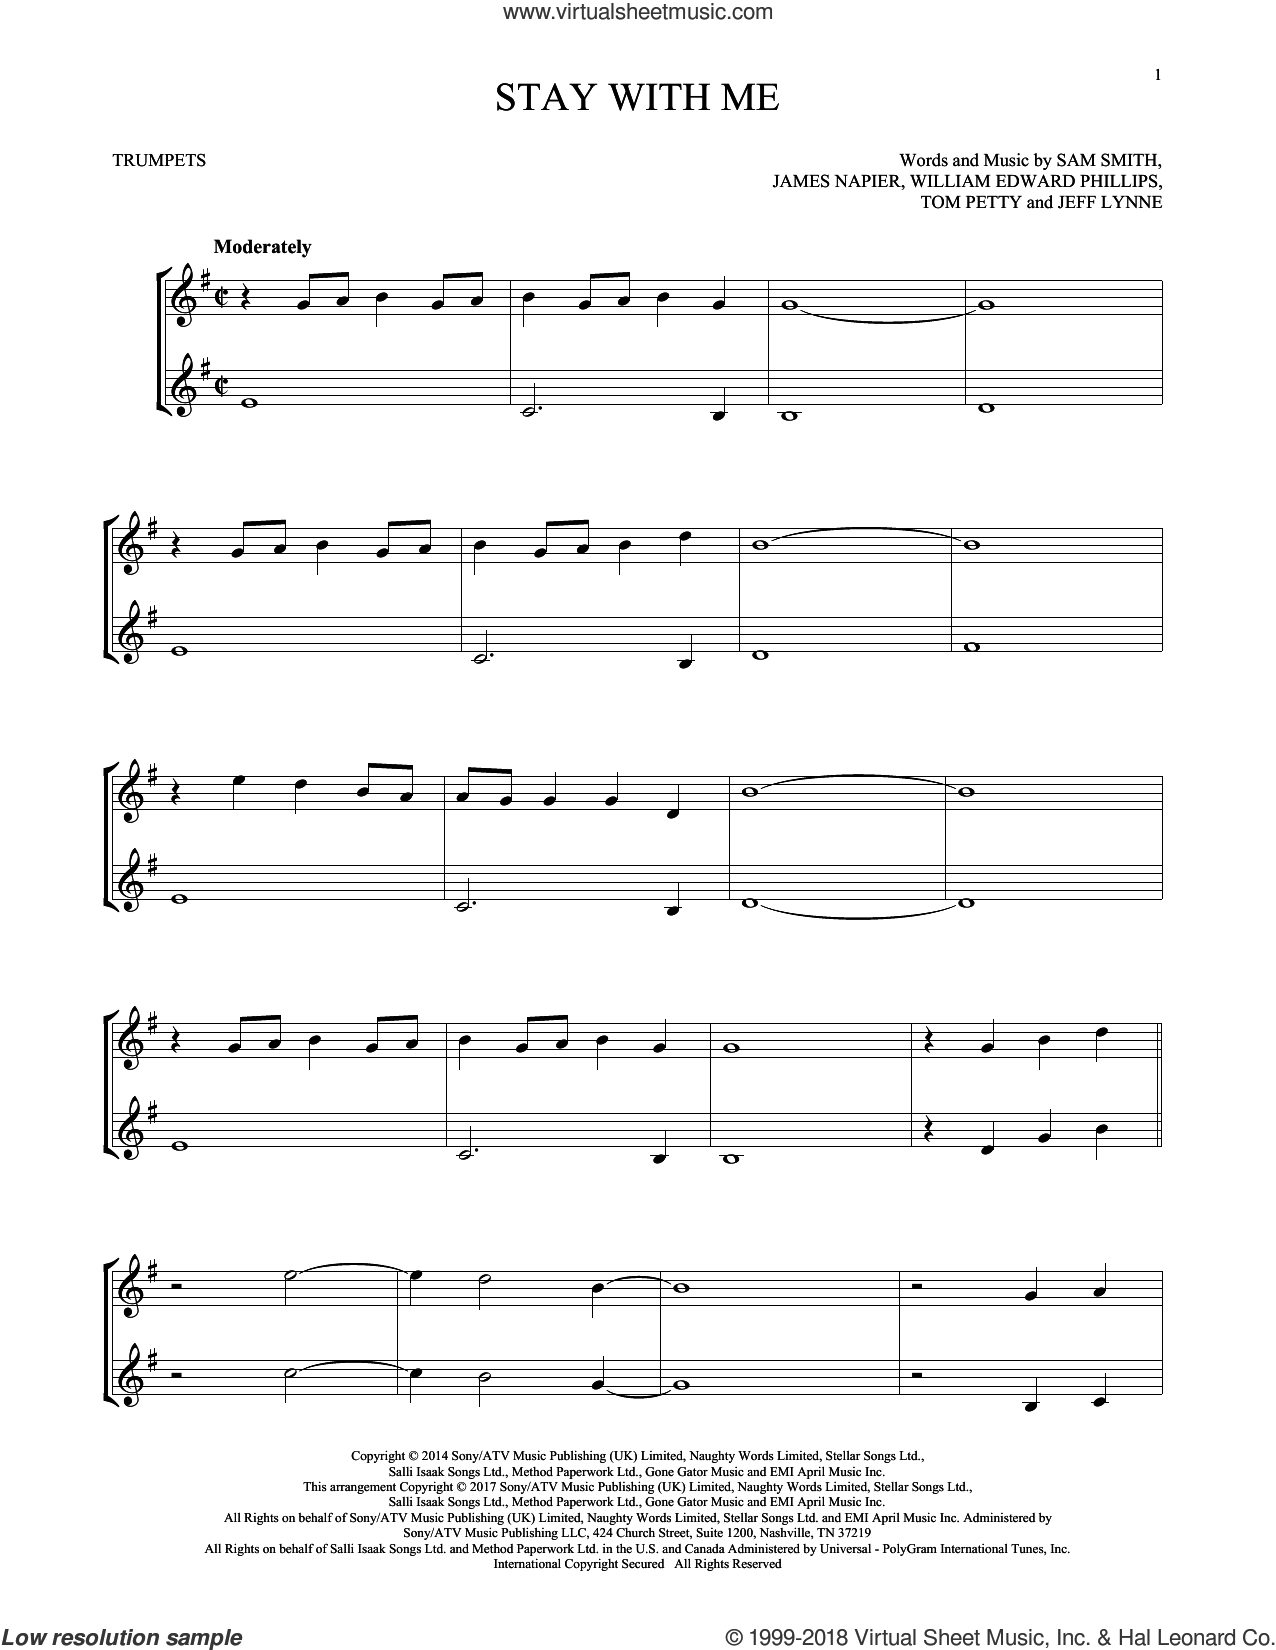 Stay With Me sheet music for two trumpets (duet, duets) by Sam Smith, James Napier, Jeff Lynne, Tom Petty and William Edward Phillips, intermediate skill level